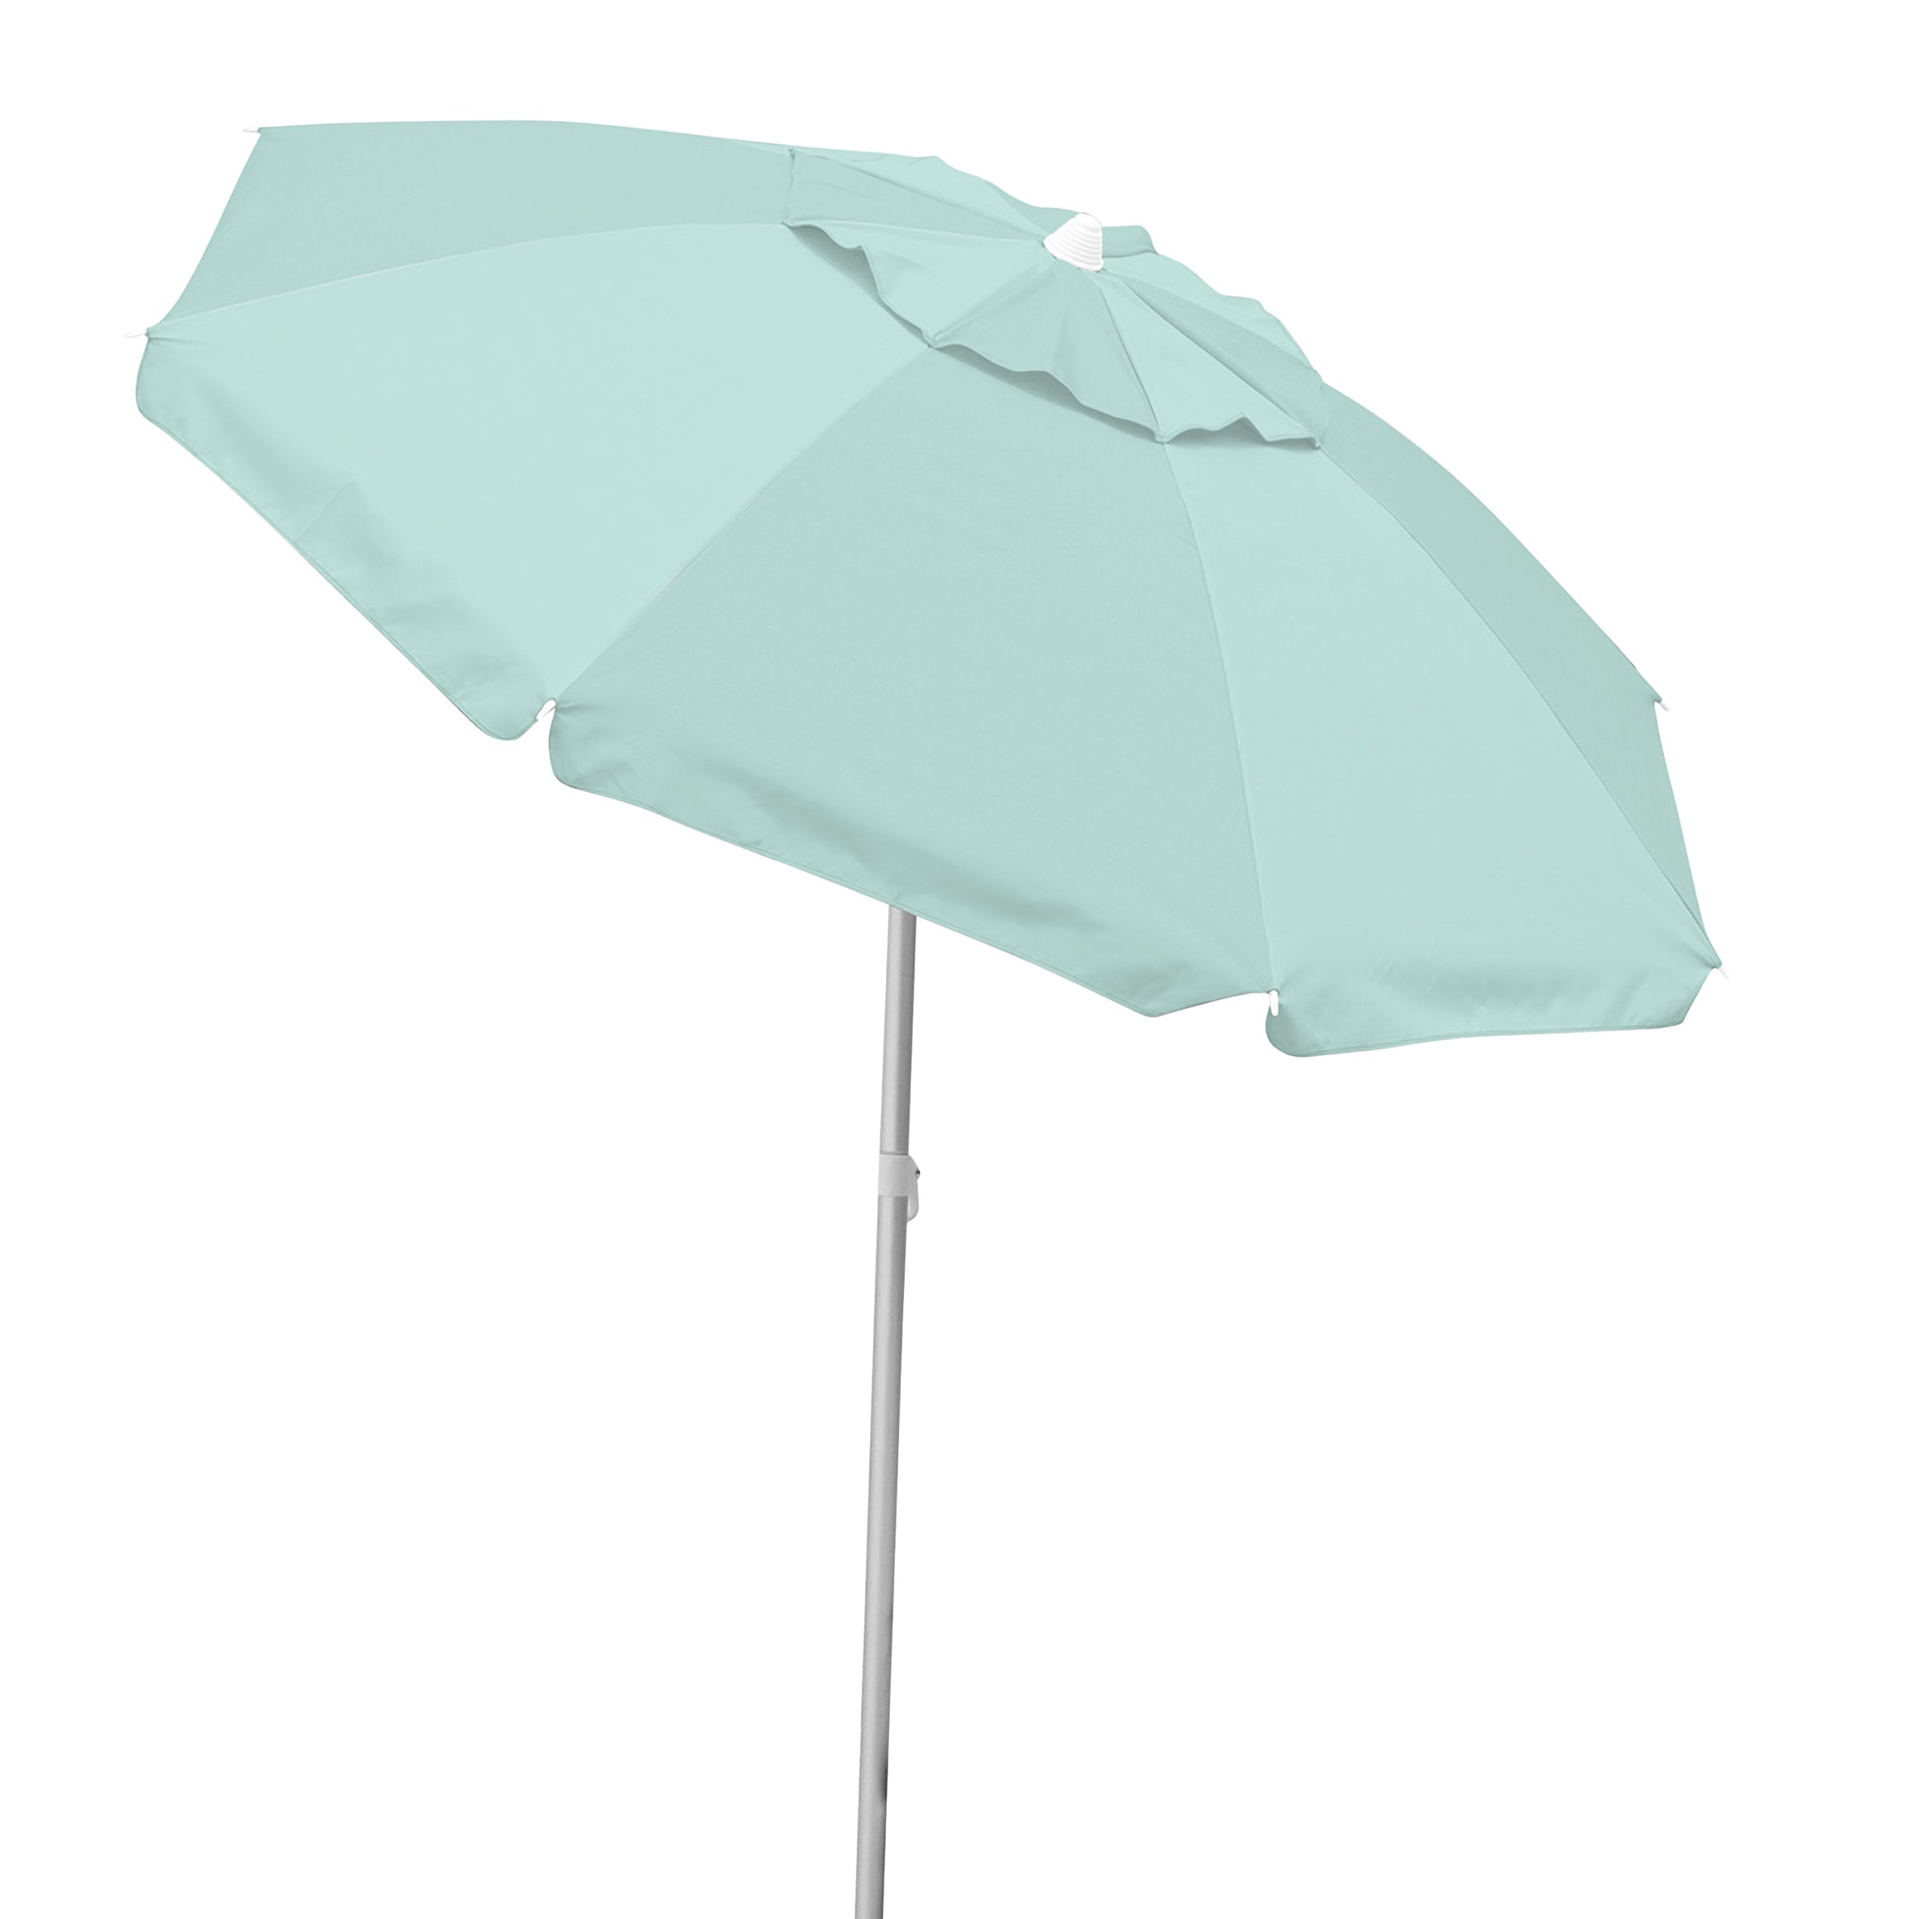 Caribbean Joe Tilting Beach Umbrella Double Canopy Windproof Design with UV Protection, Mint, 6.5' by Caribbean Joe